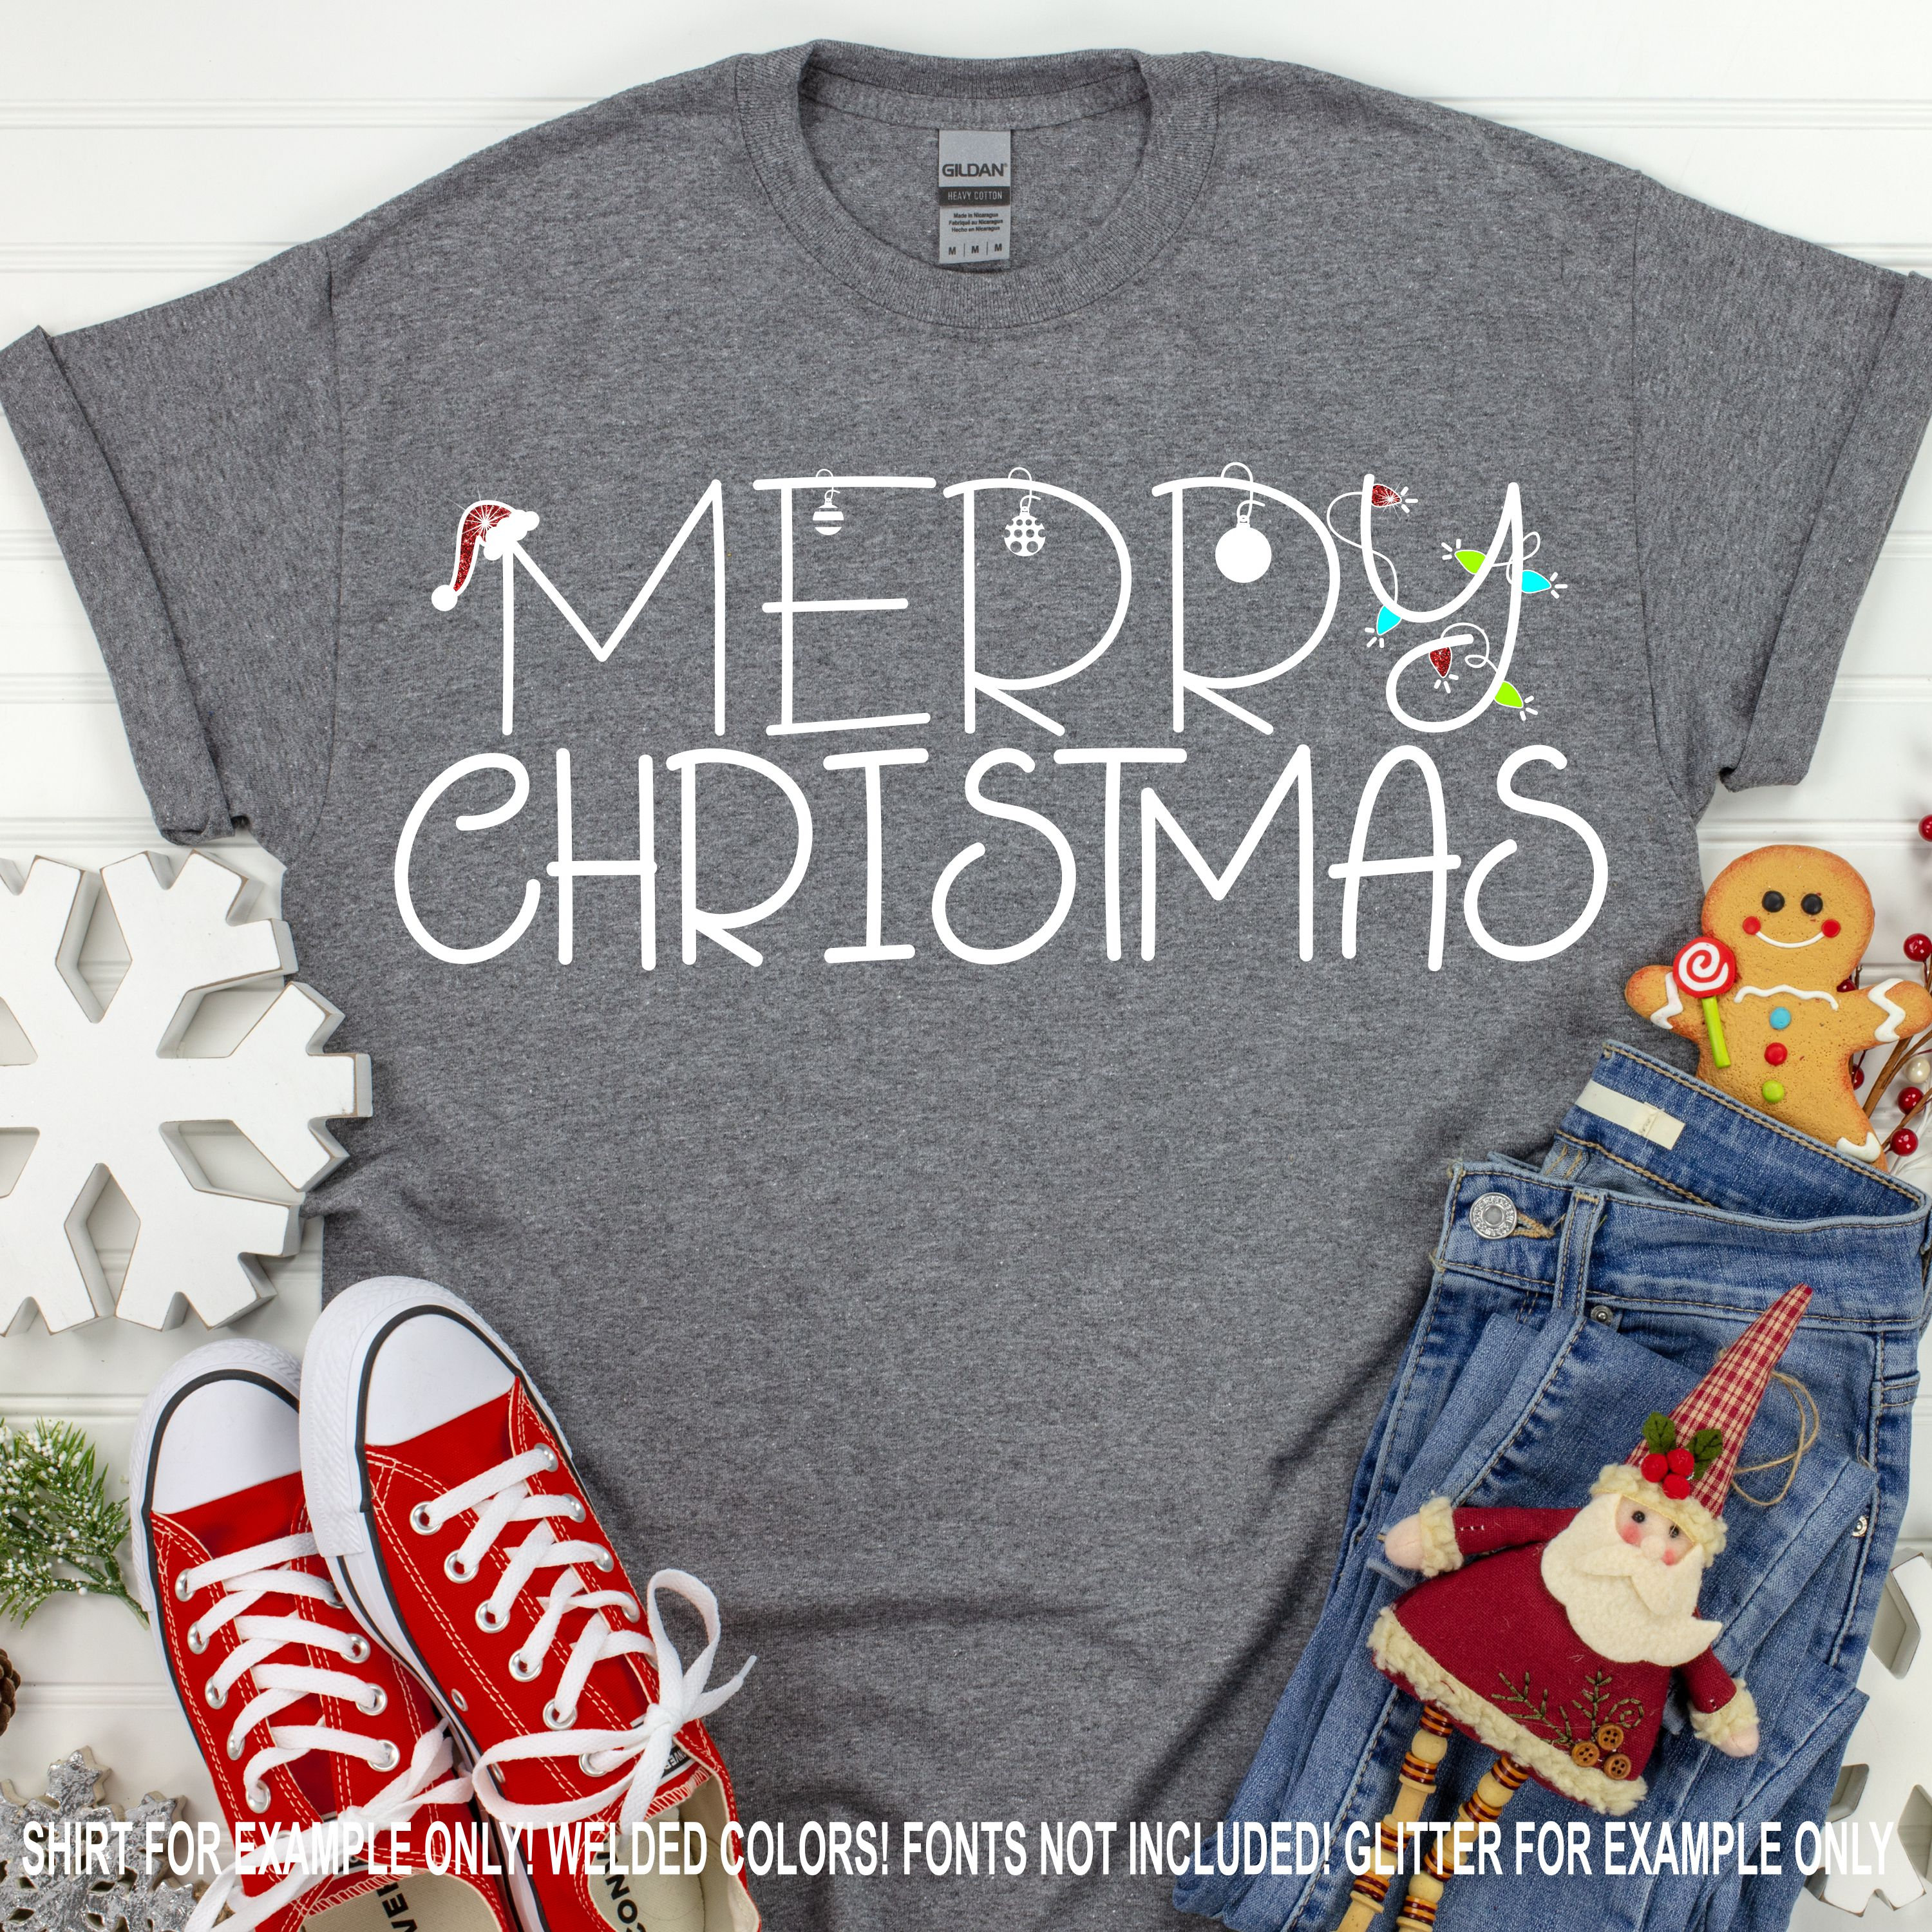 Merry-christmas-lights-svgmerry-svgchristmas-svgchristmas-svgchristmas-svg-designs-christmas-cut-file-svg-for-cricutsvg-for-mobile-5fa094d7